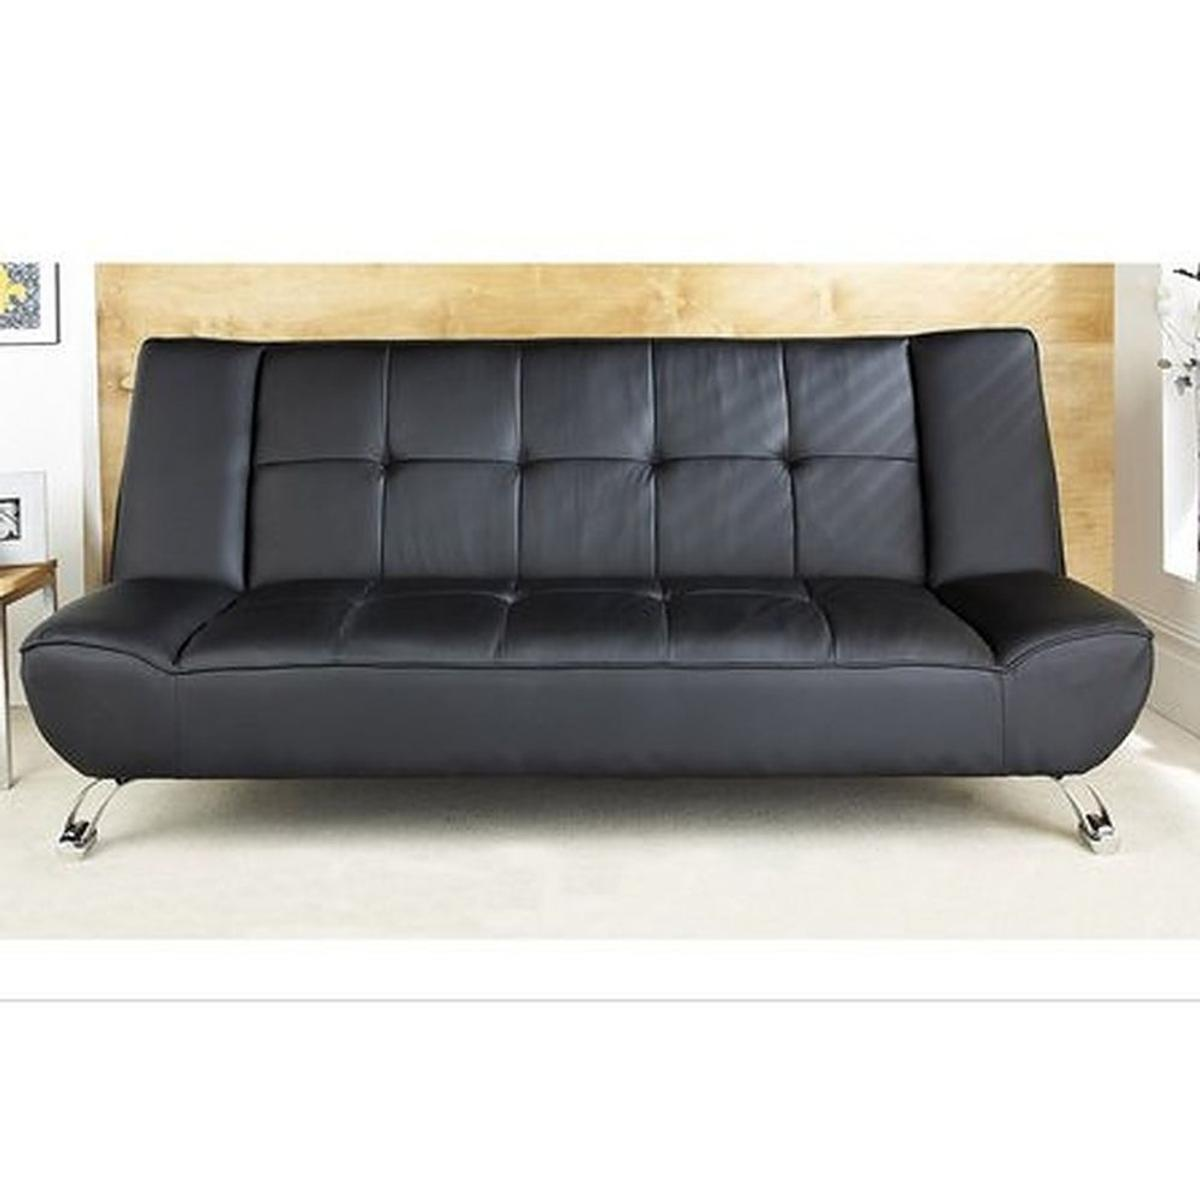 Stupendous Genoa Black Faux Leather Sofa Bed Caraccident5 Cool Chair Designs And Ideas Caraccident5Info